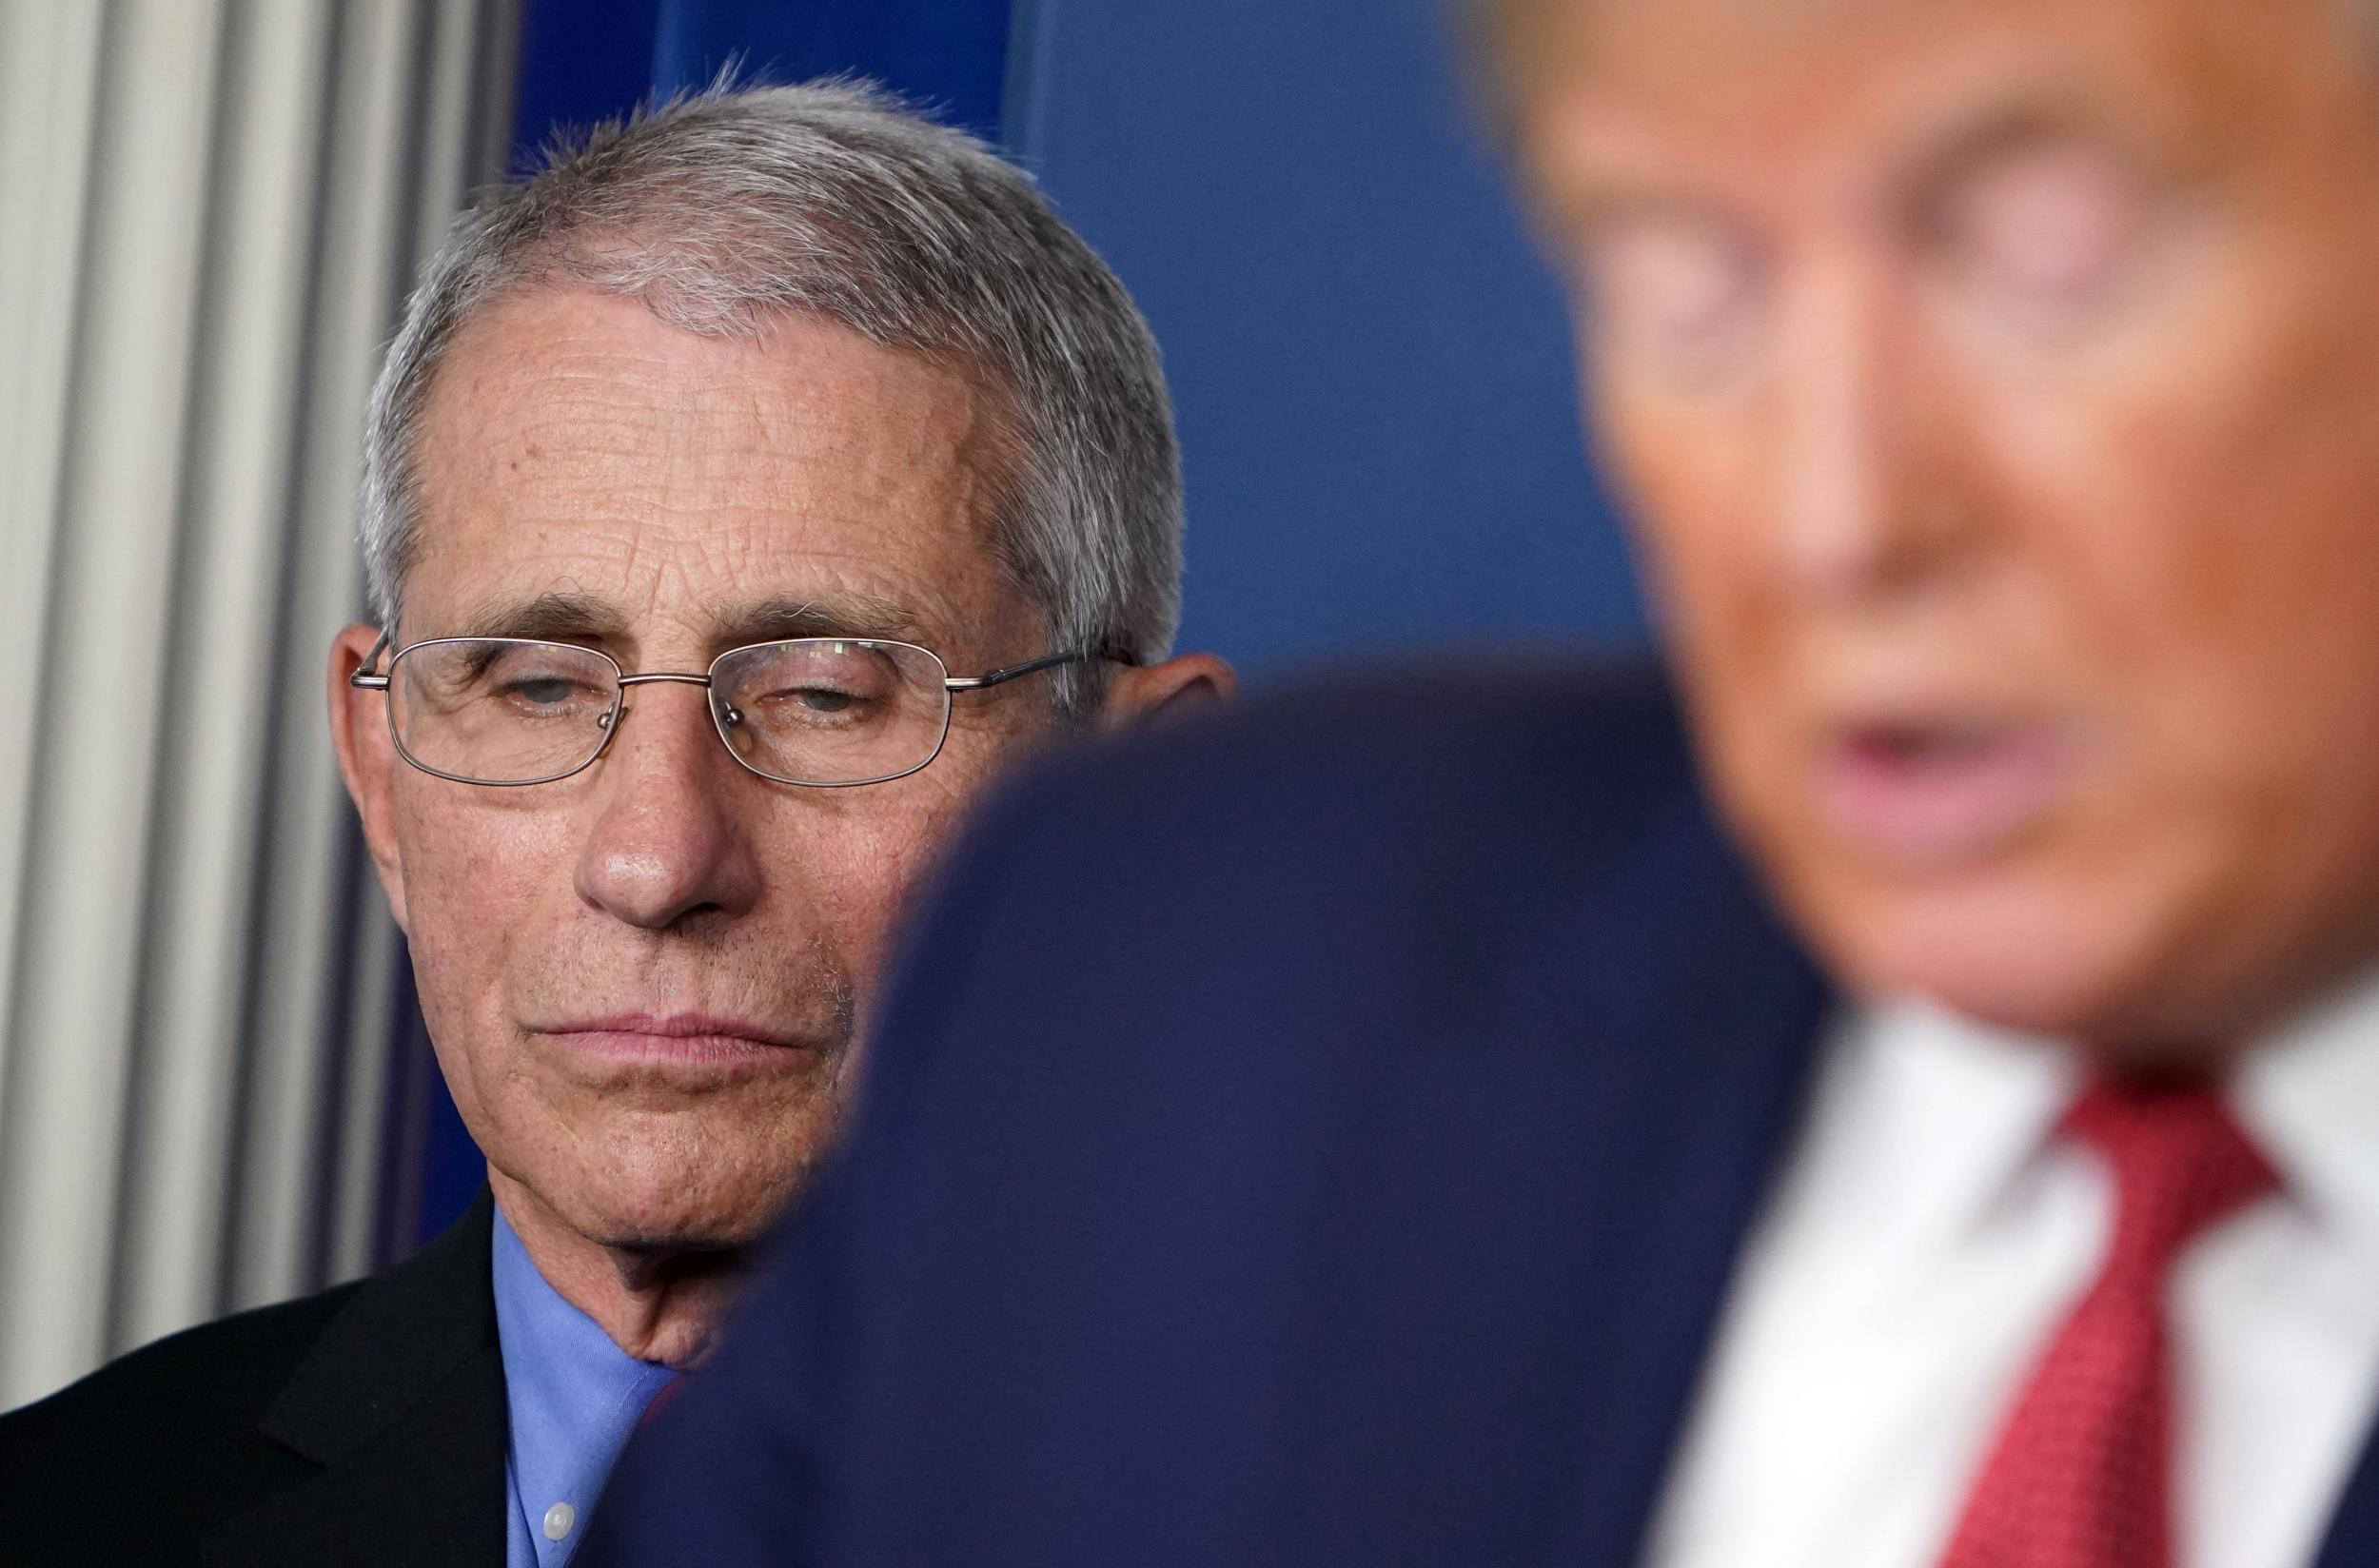 'Be prepared for another cycle': Tense Dr Fauci warns coronavirus will come back as Trump says 'it's time' to restart economy